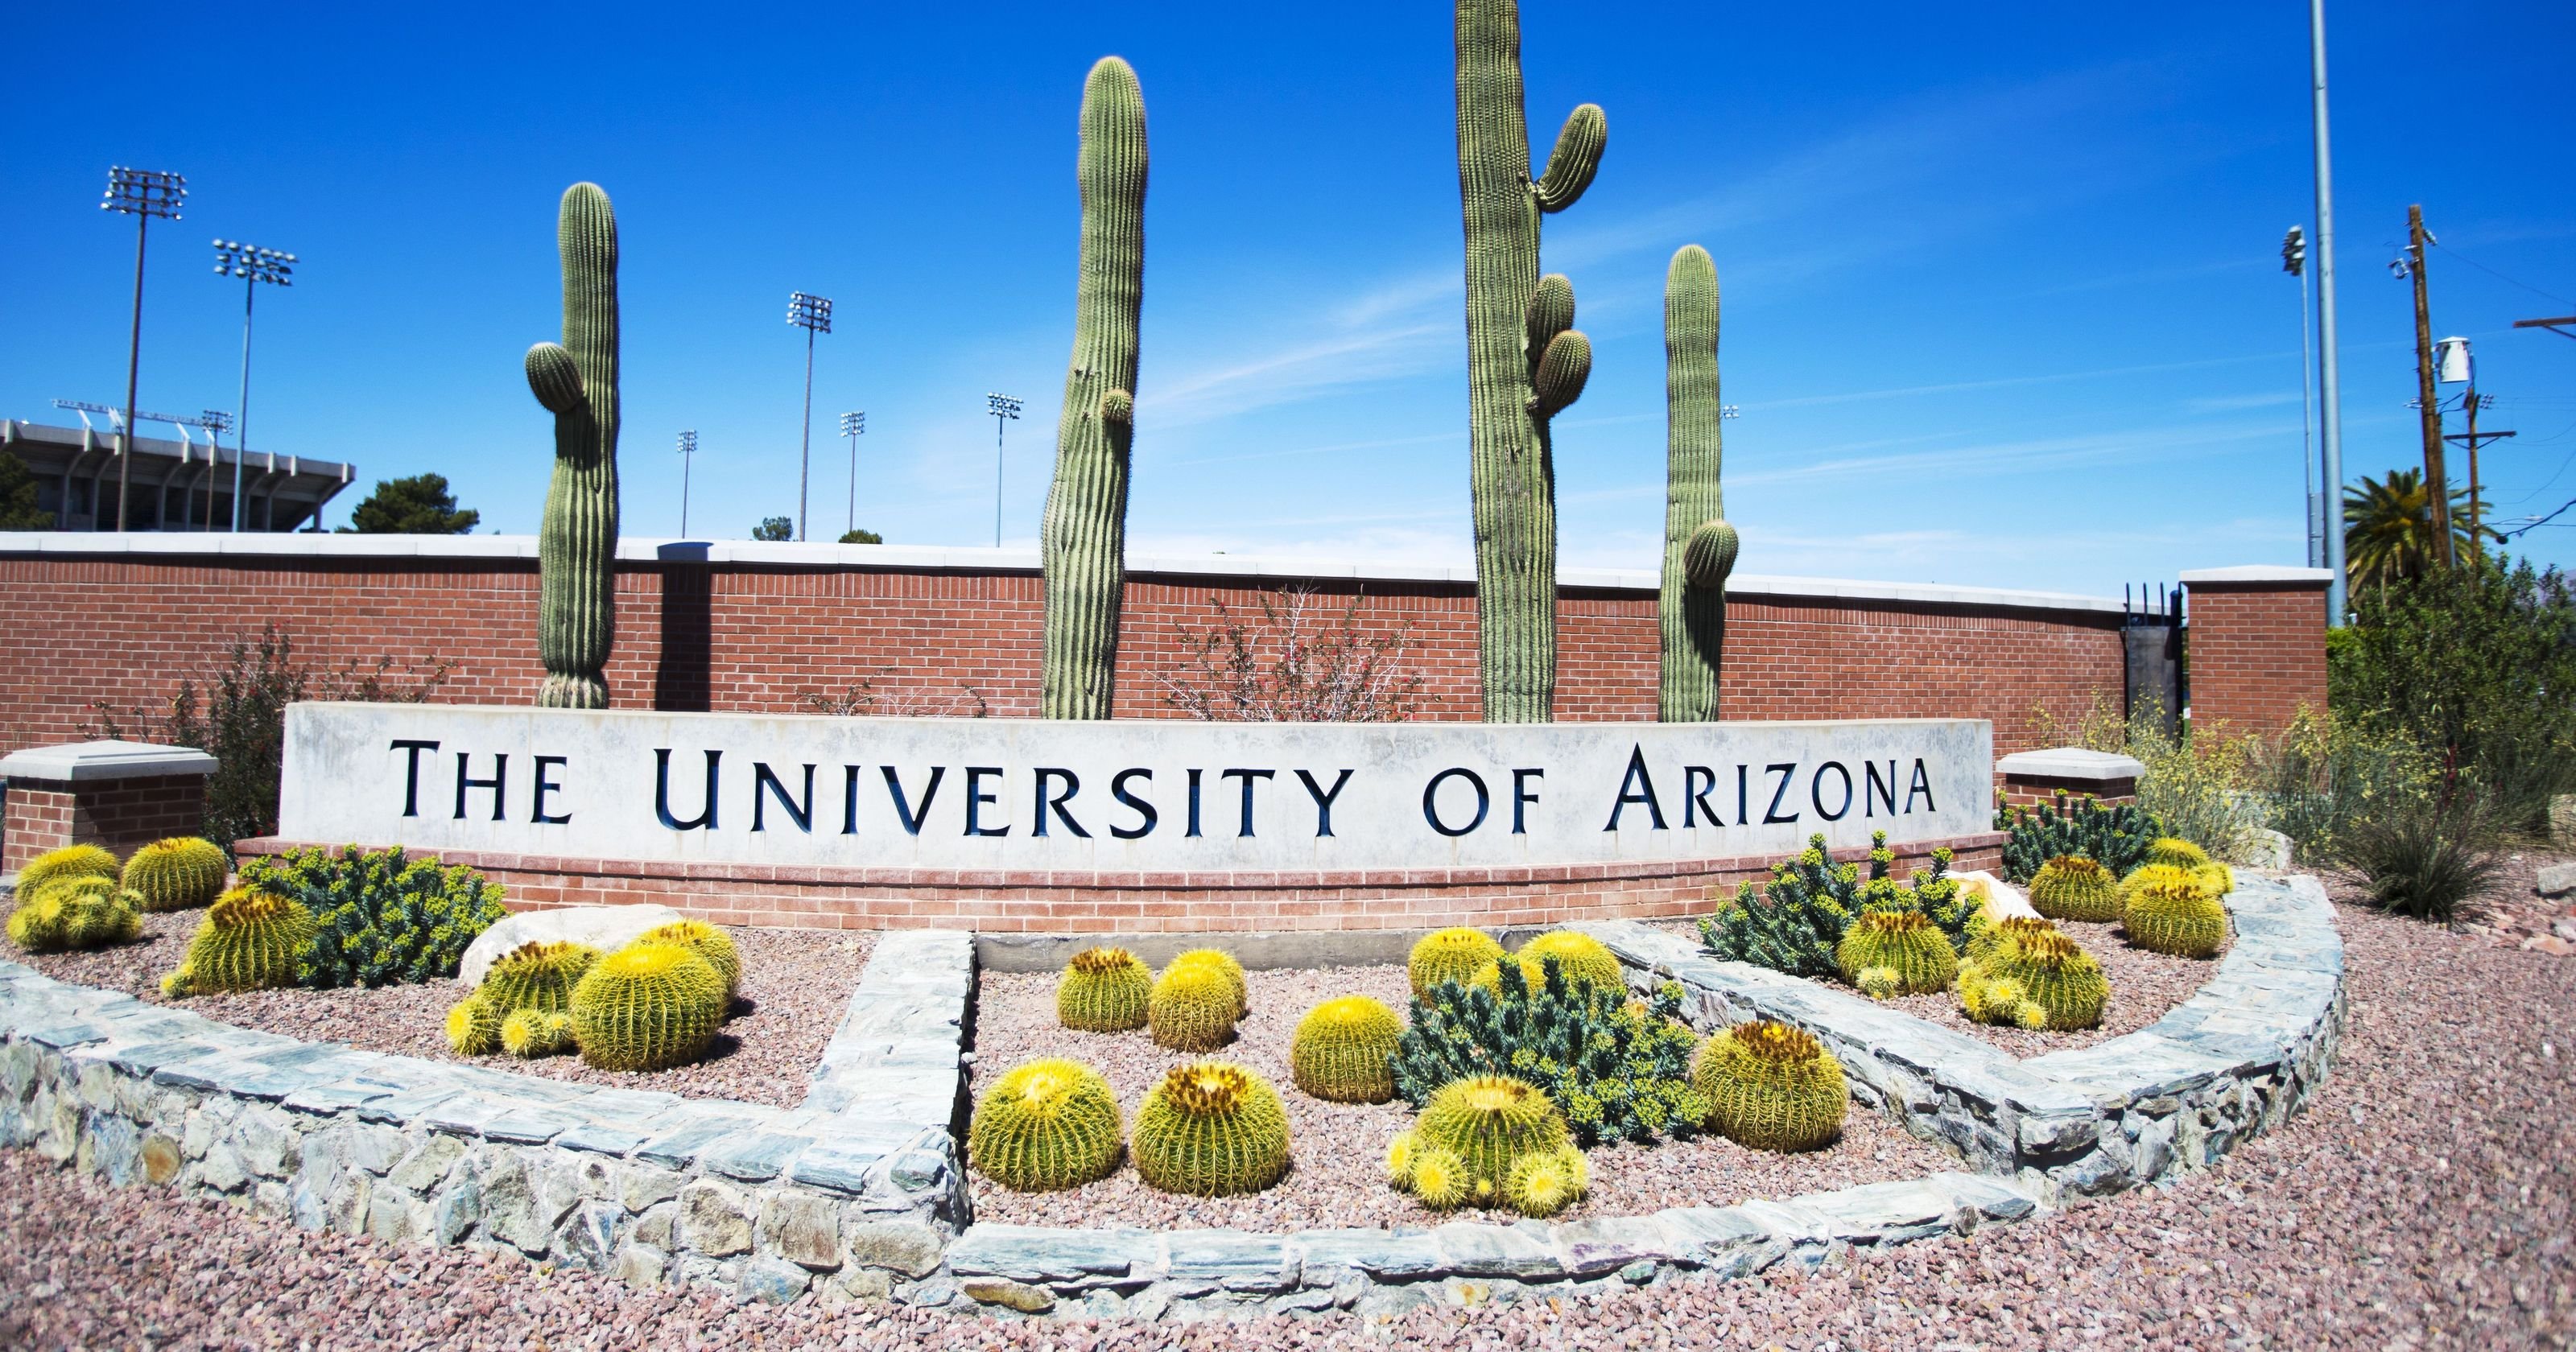 The University of Arizona is one among the nine institutions to receive the Seal of Excelencia certification for serving Latino students.